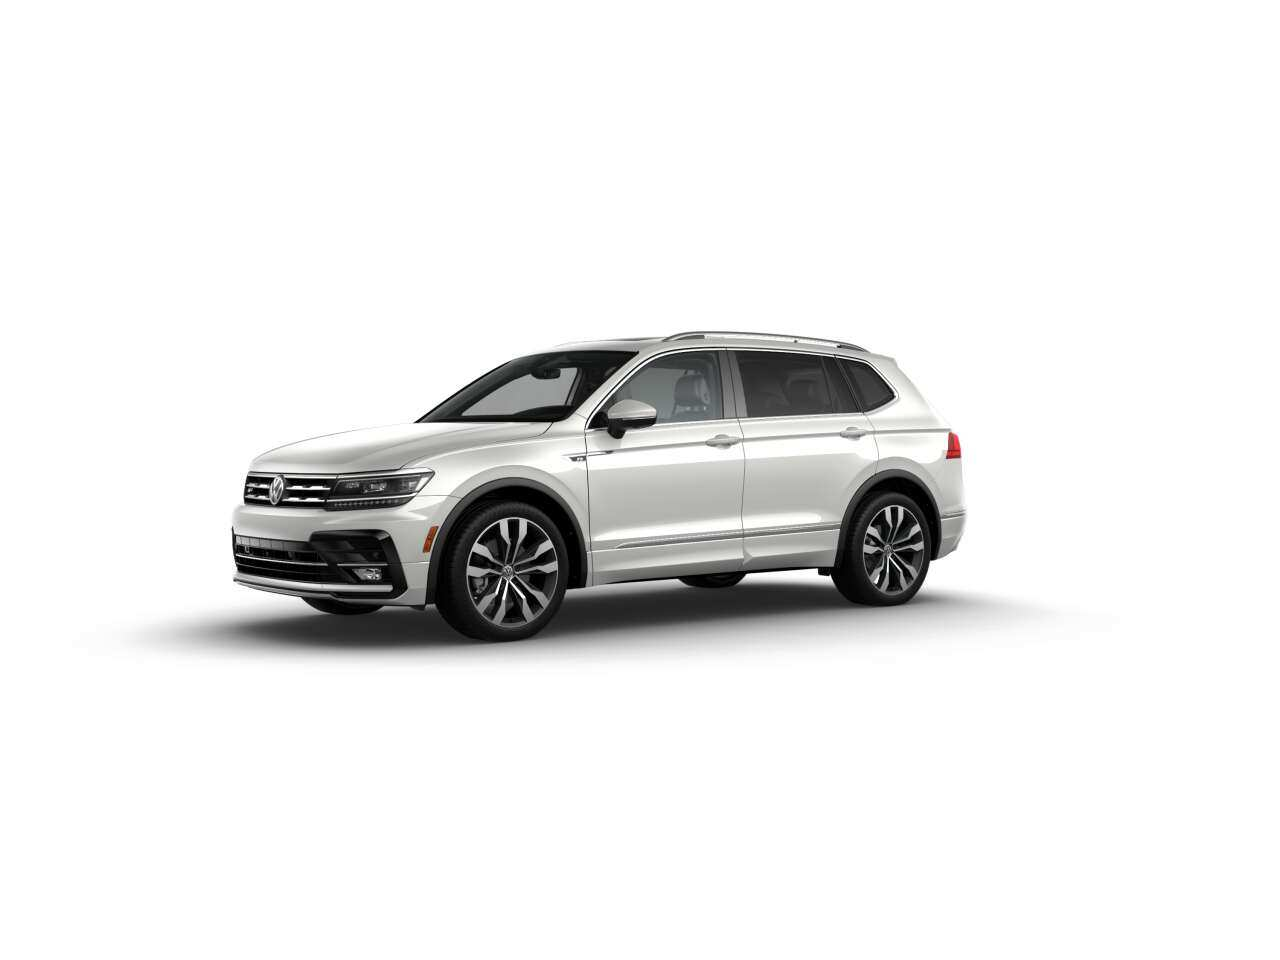 92 All New 2019 Volkswagen Tiguan New Review